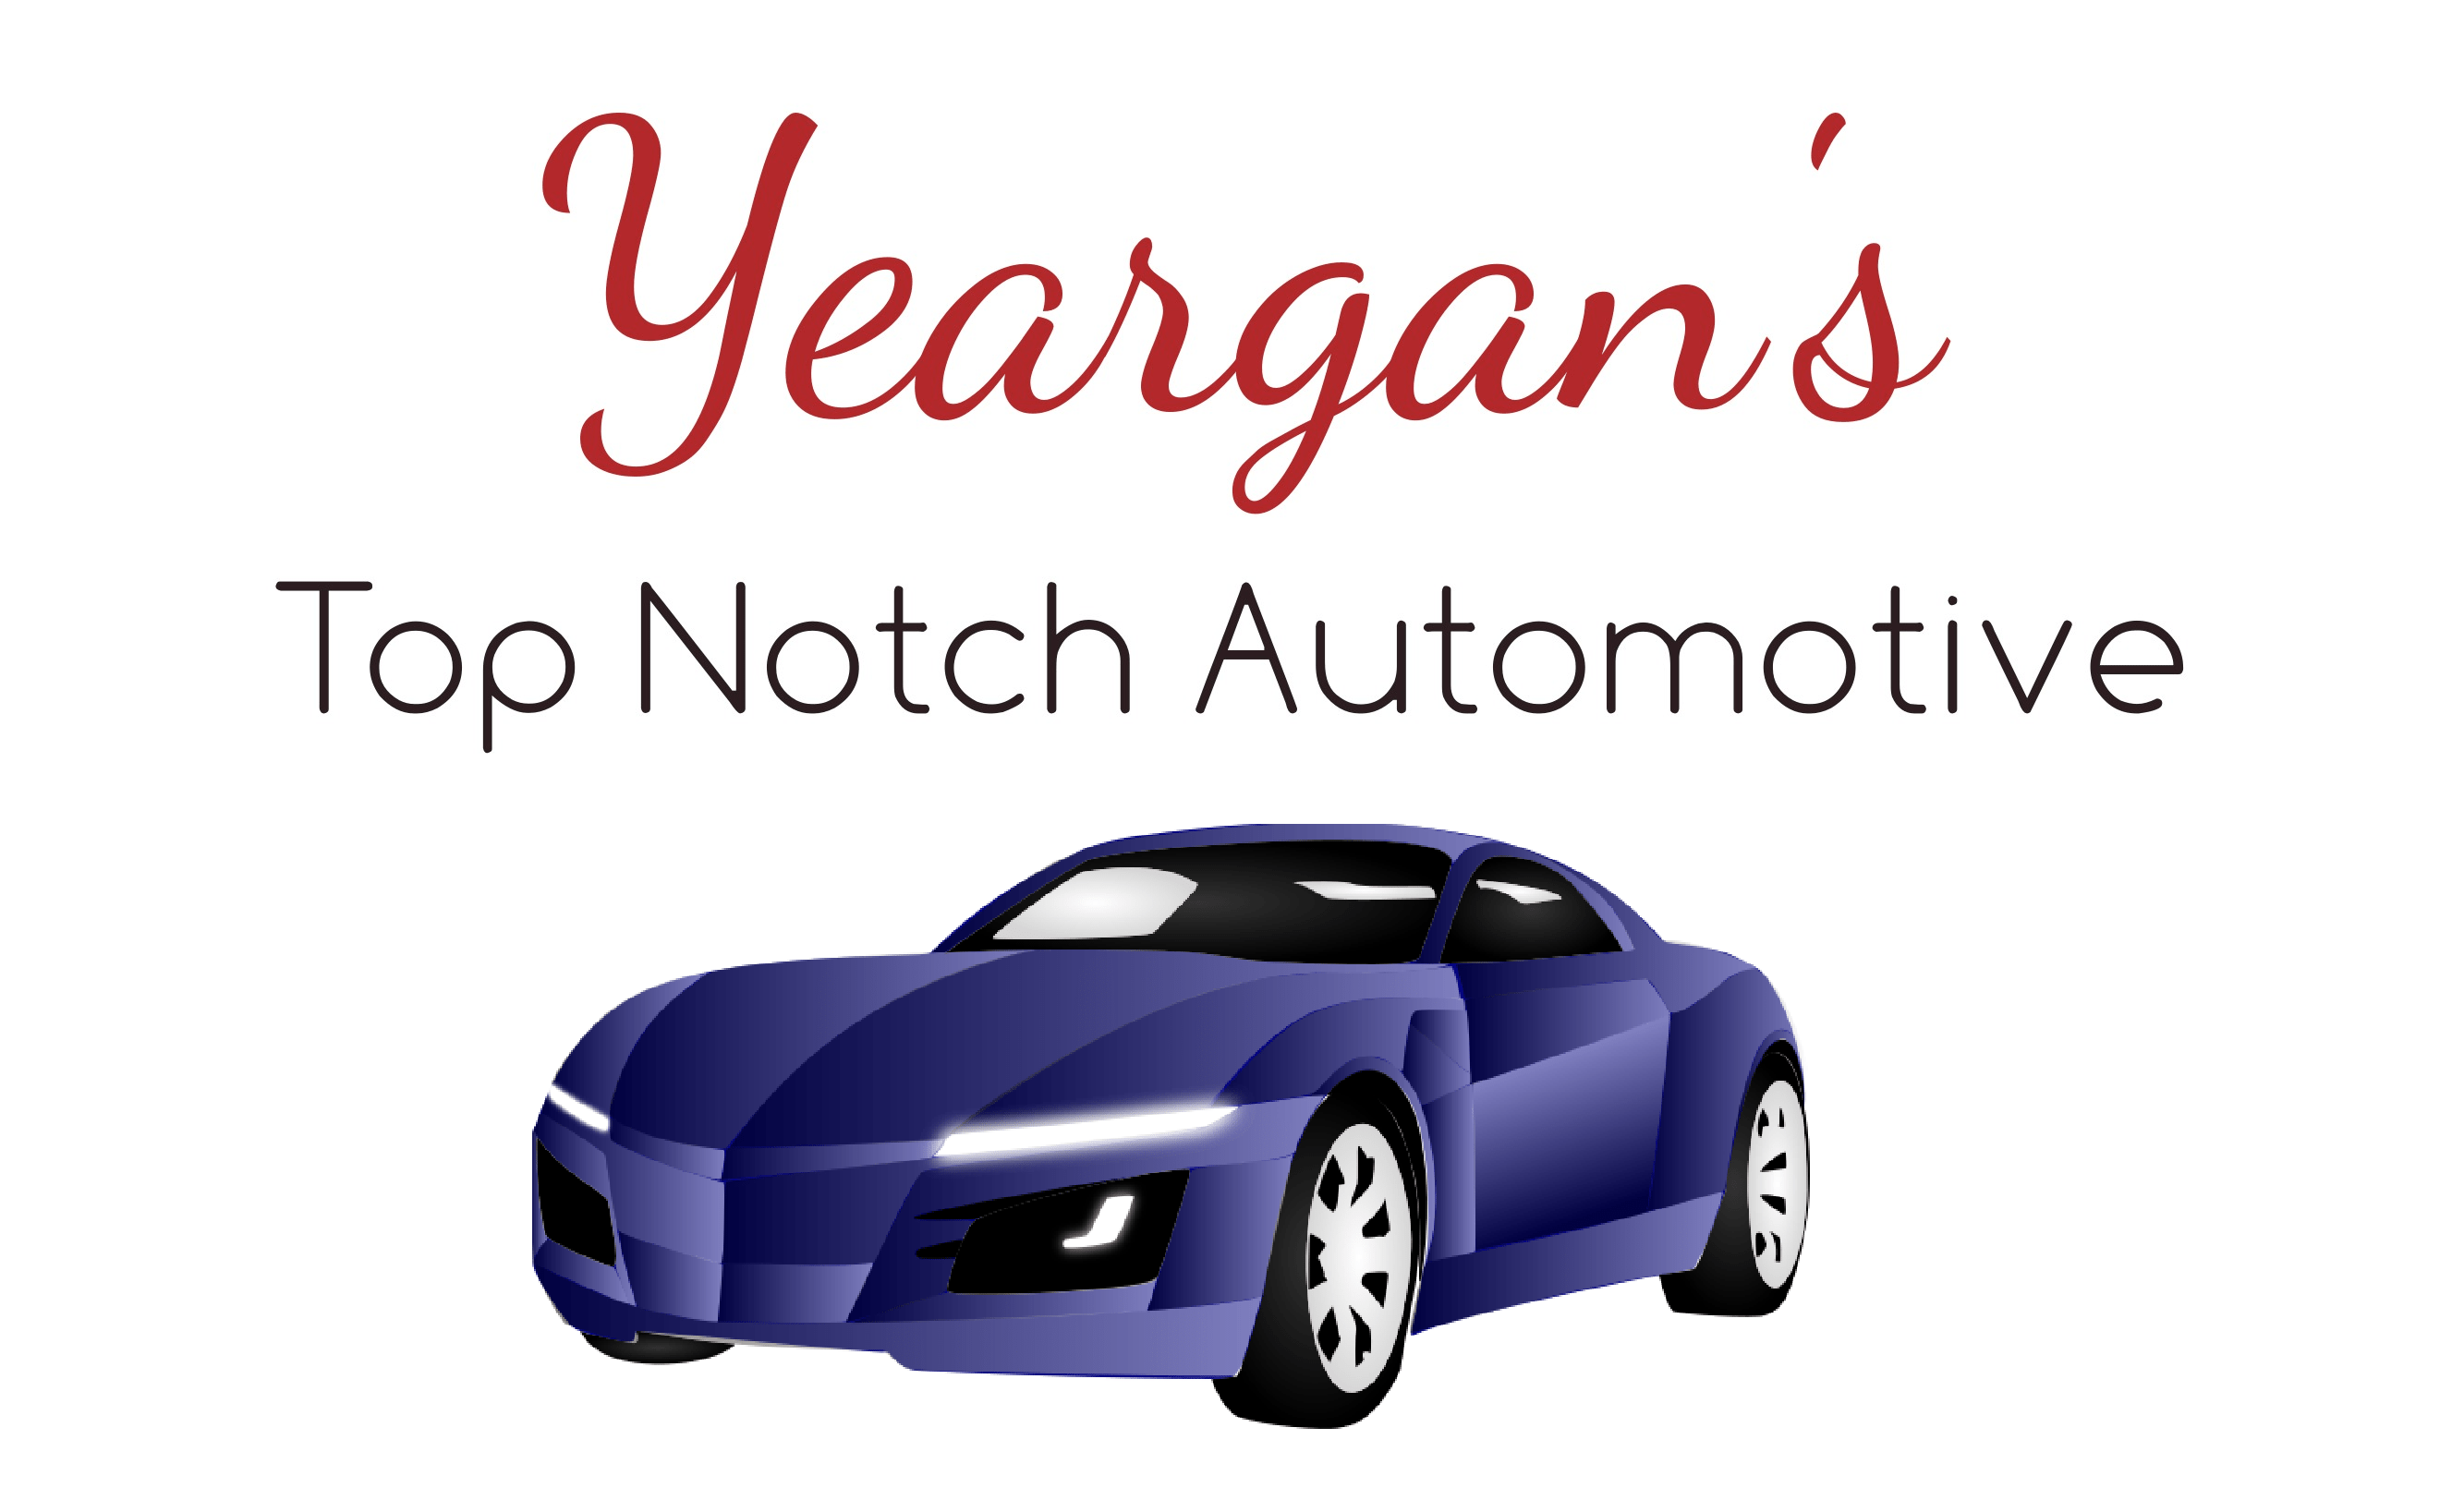 Automotive Repair Yeargans Top Notch Automotive Inc Carrboro Nc About Us